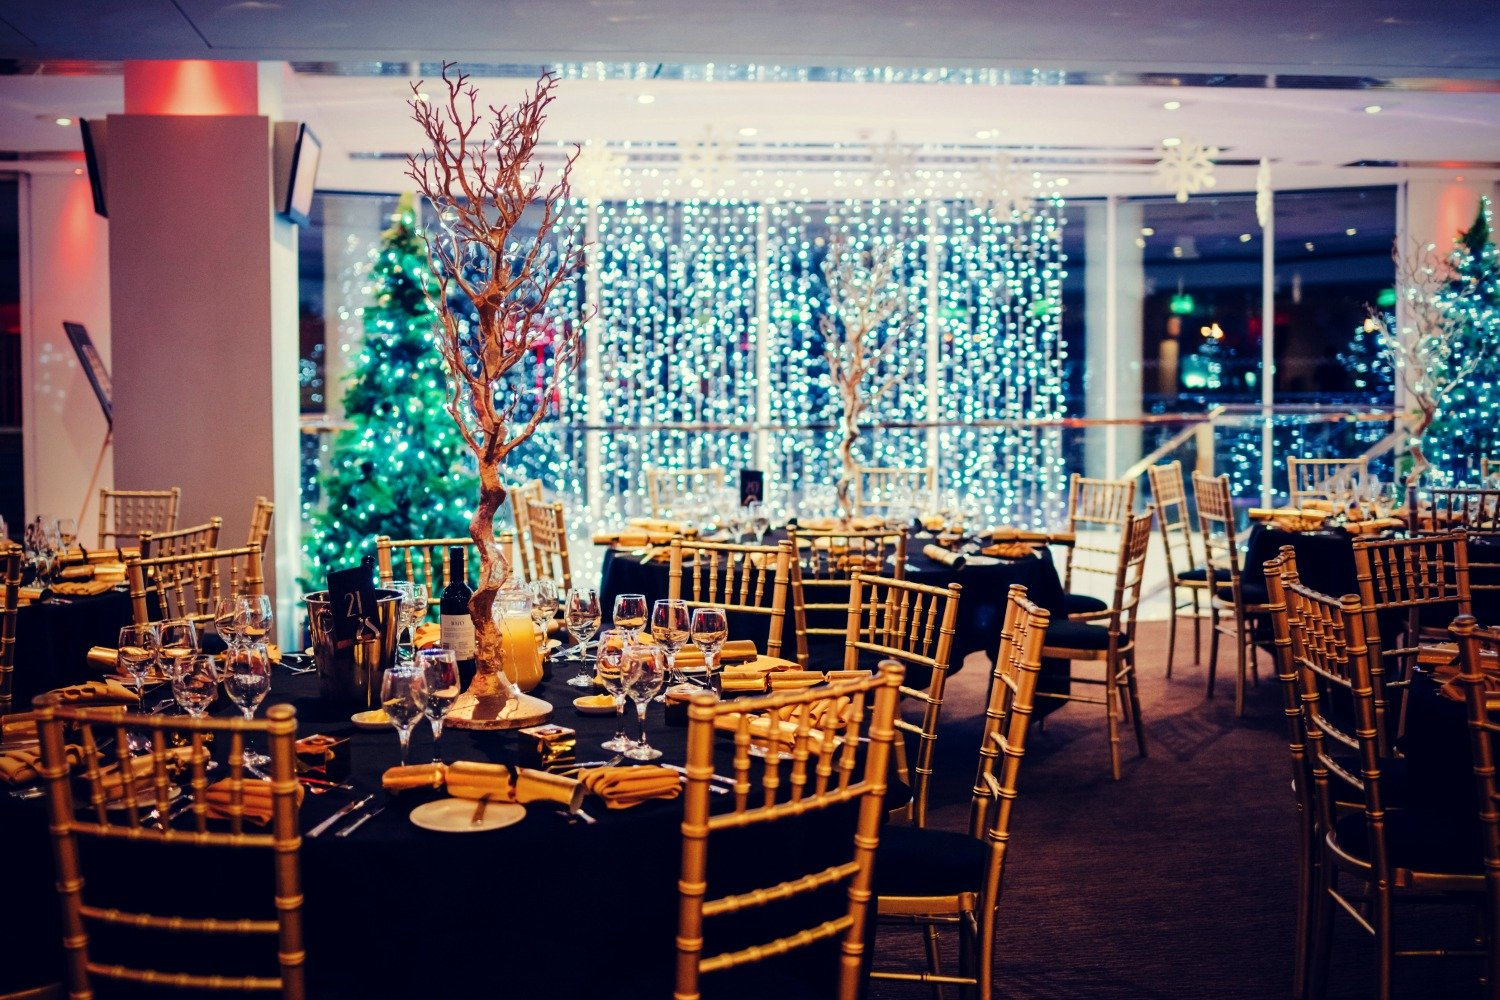 CHRISTMAS & NEW YEAR @ EPSOM DOWNS RACECOURSE